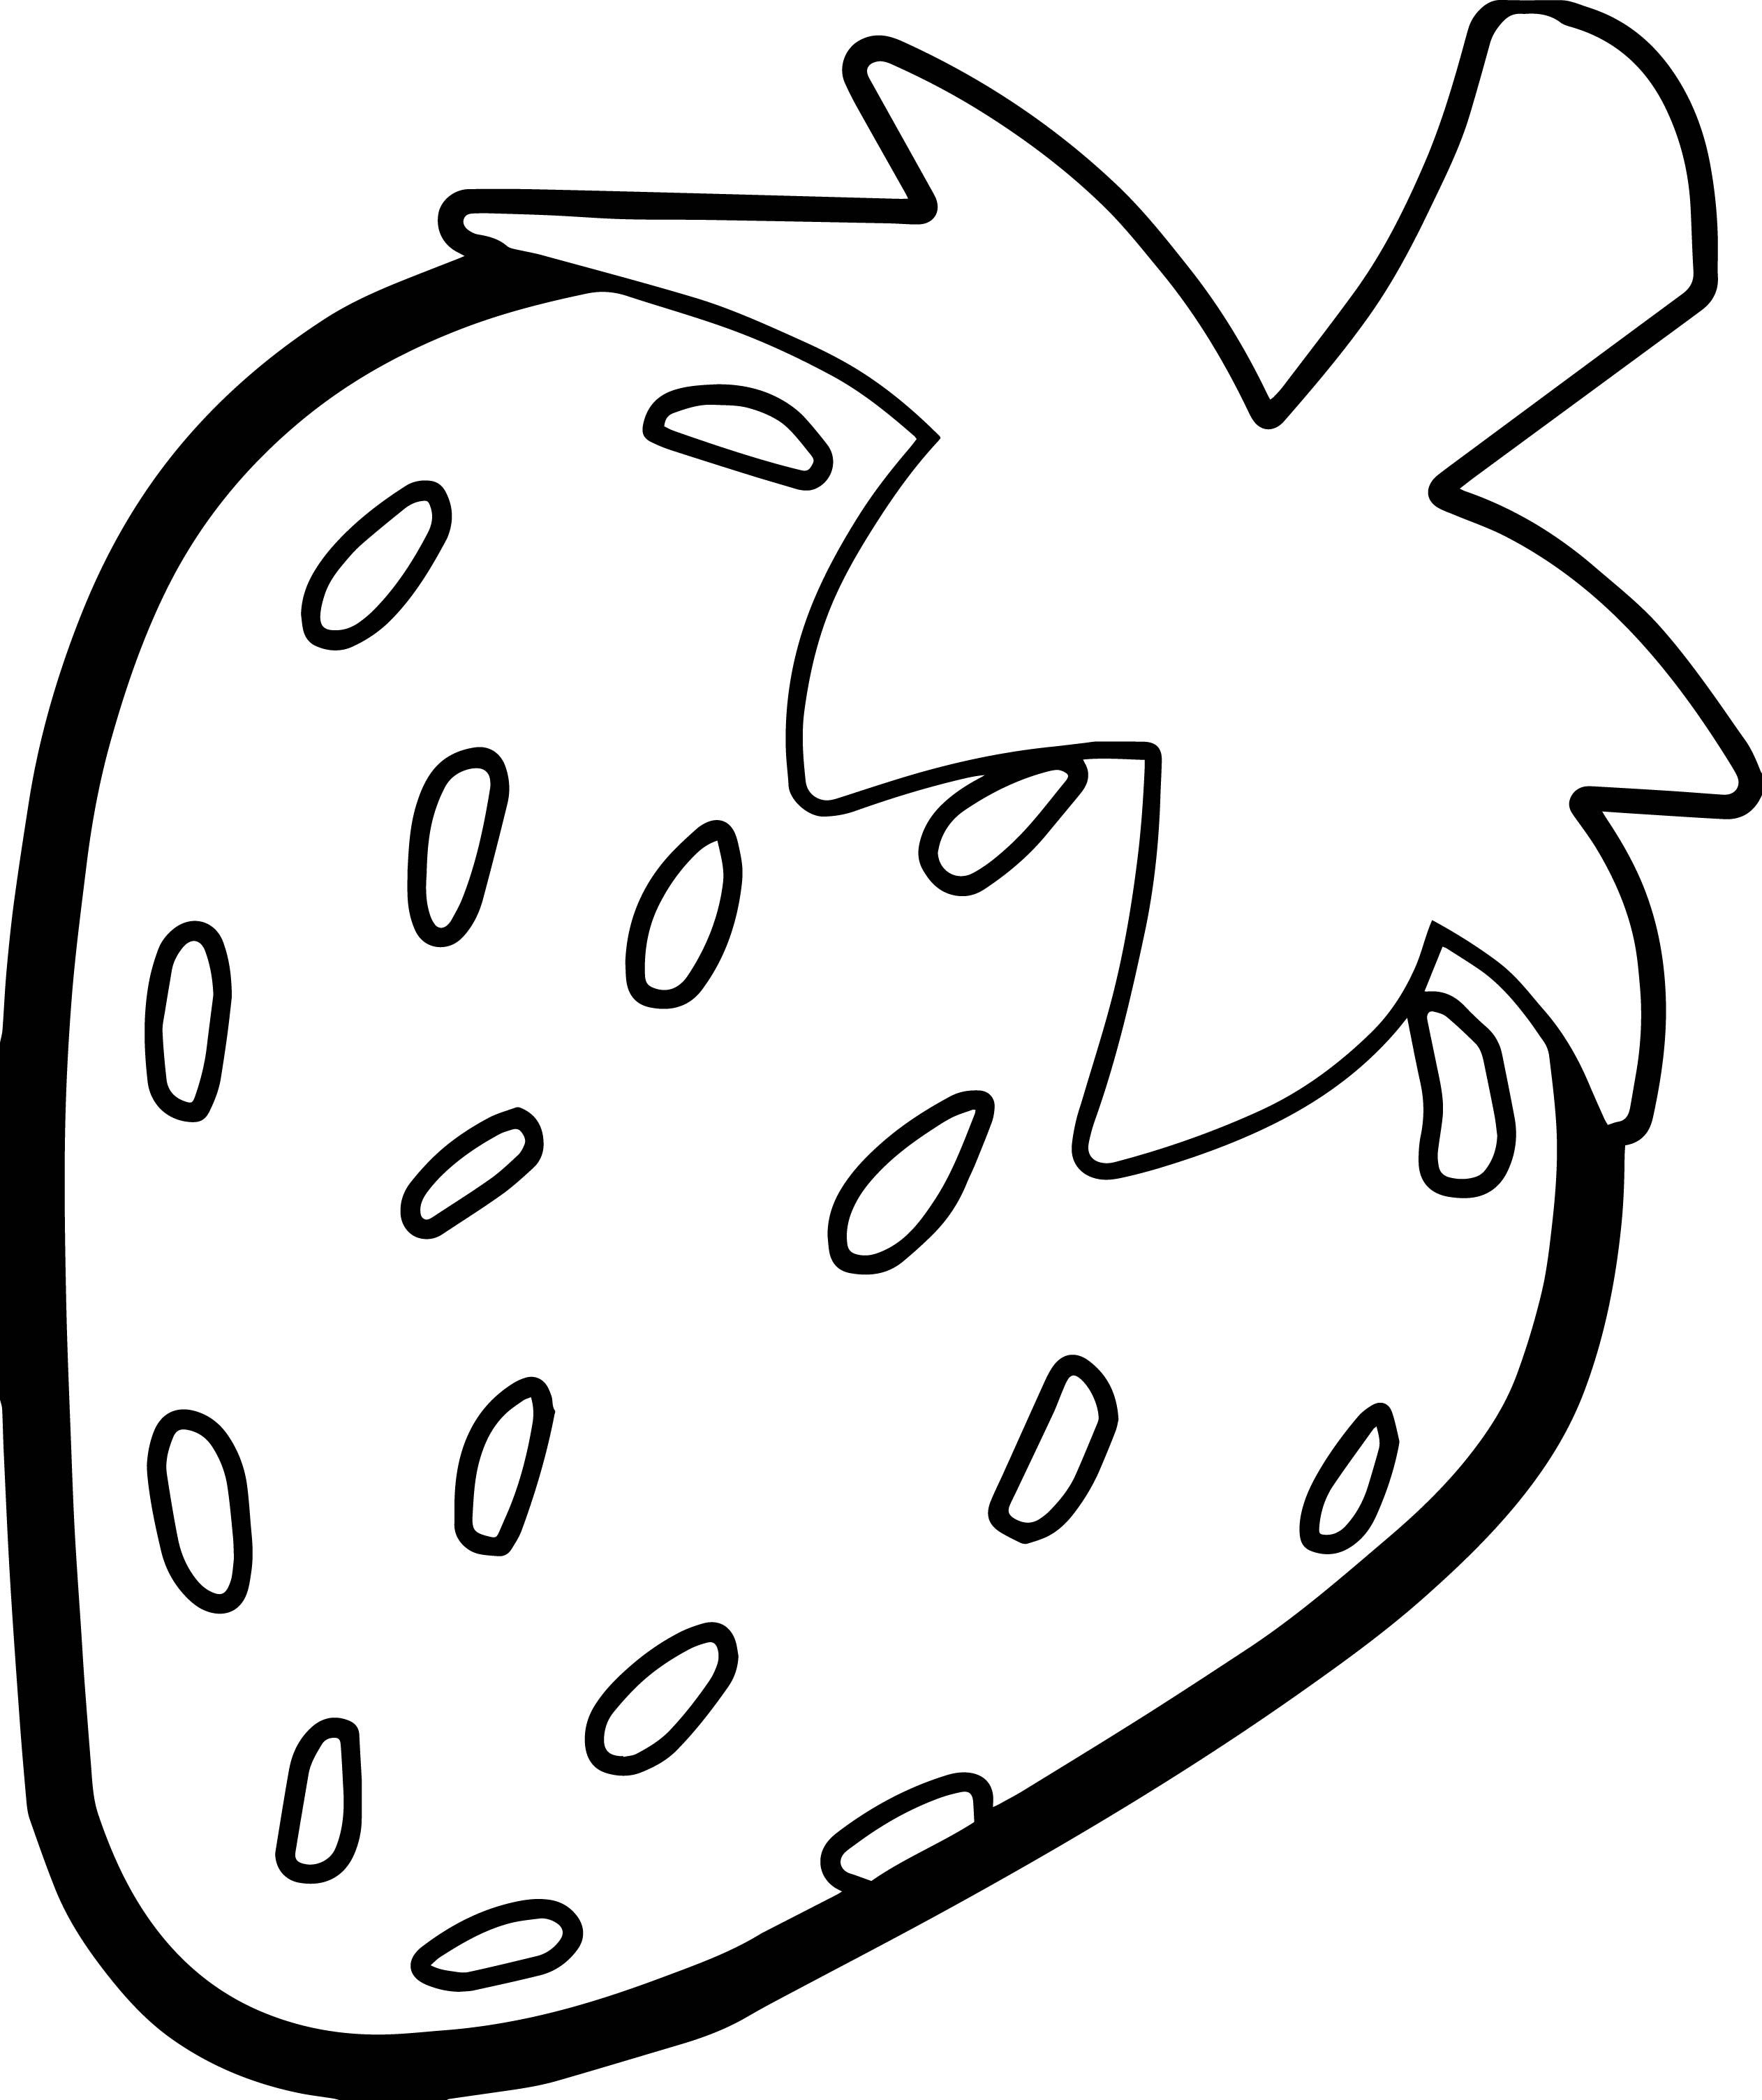 strawberry coloring page fresh strawberry coloring pages fantasy coloring pages page strawberry coloring